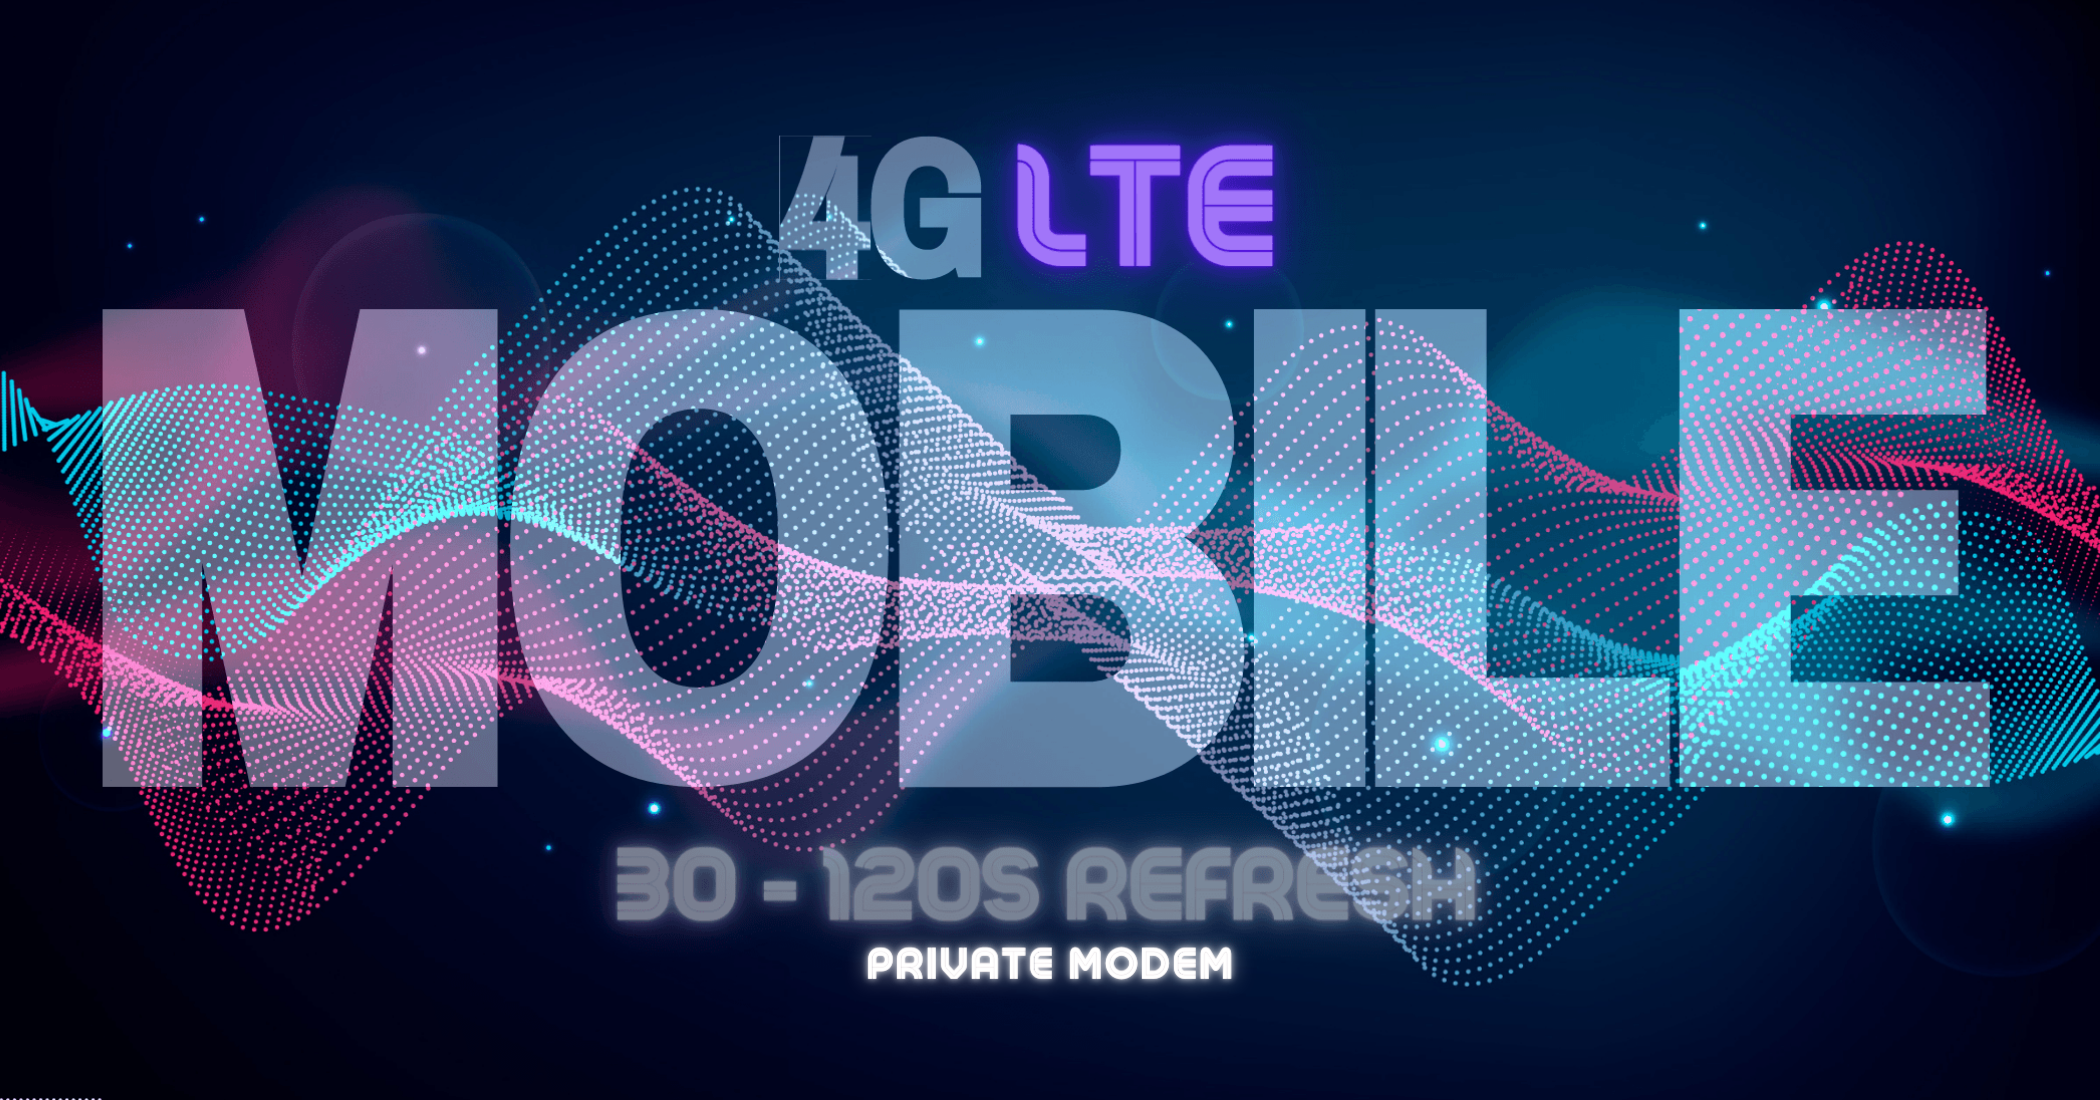 Private - 4G LTE Mobile Proxy - 30-60 Second Refresh - AUTO DELIVERY - GREAT FOR SEO GLOBAL